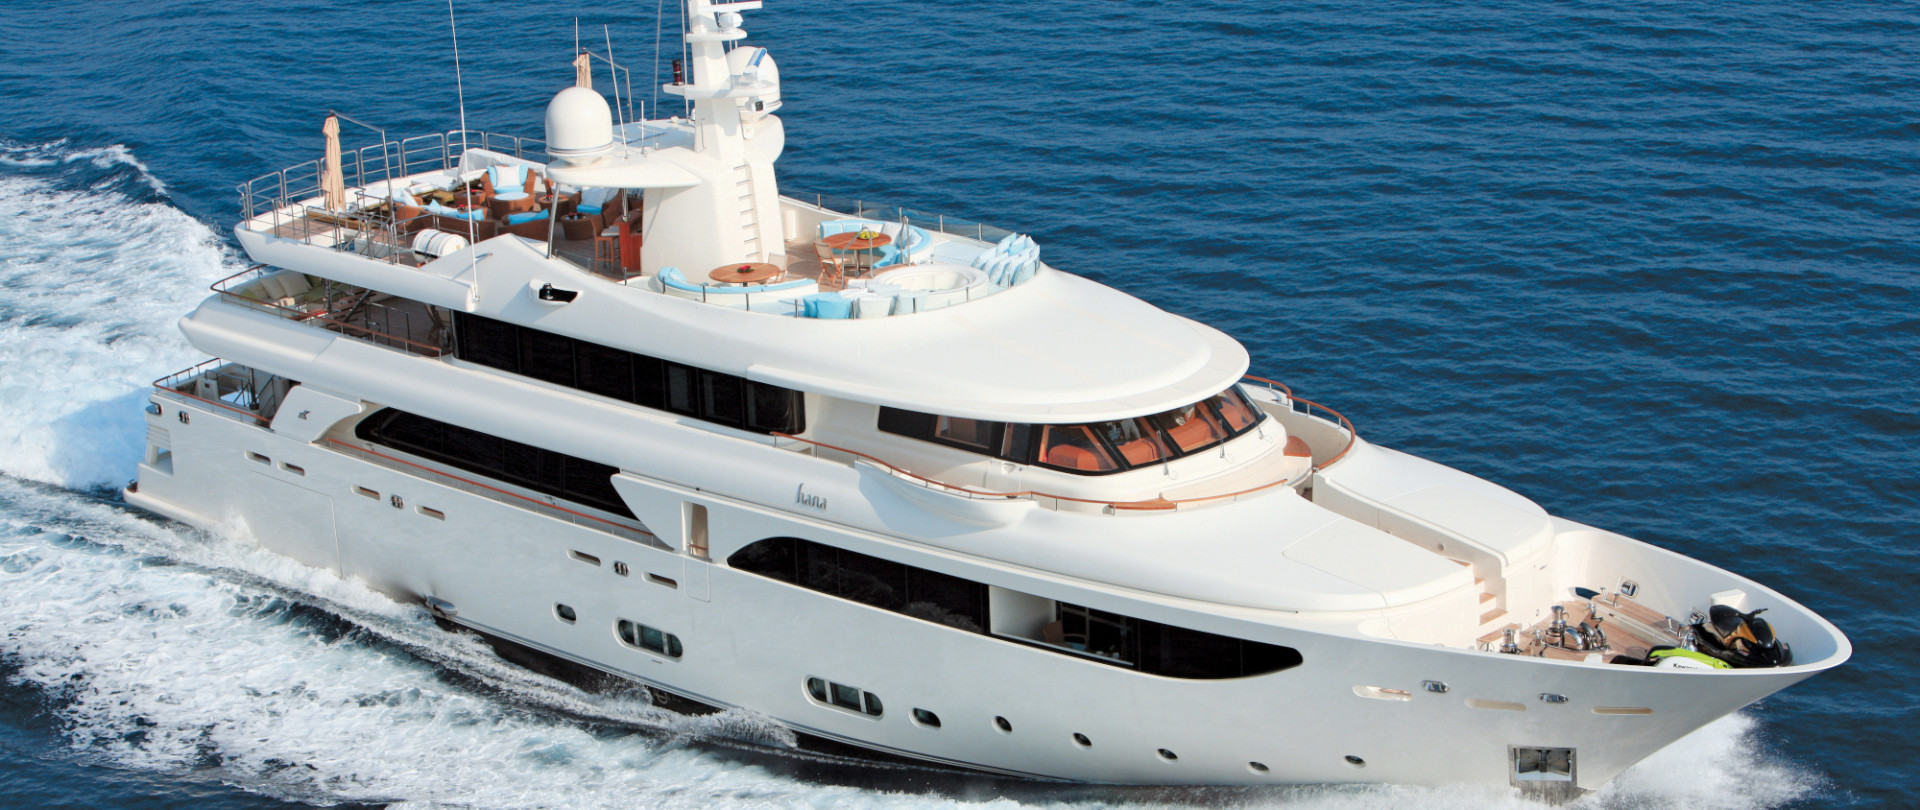 Hana - Lying in Genoa and available for inspection photo 1